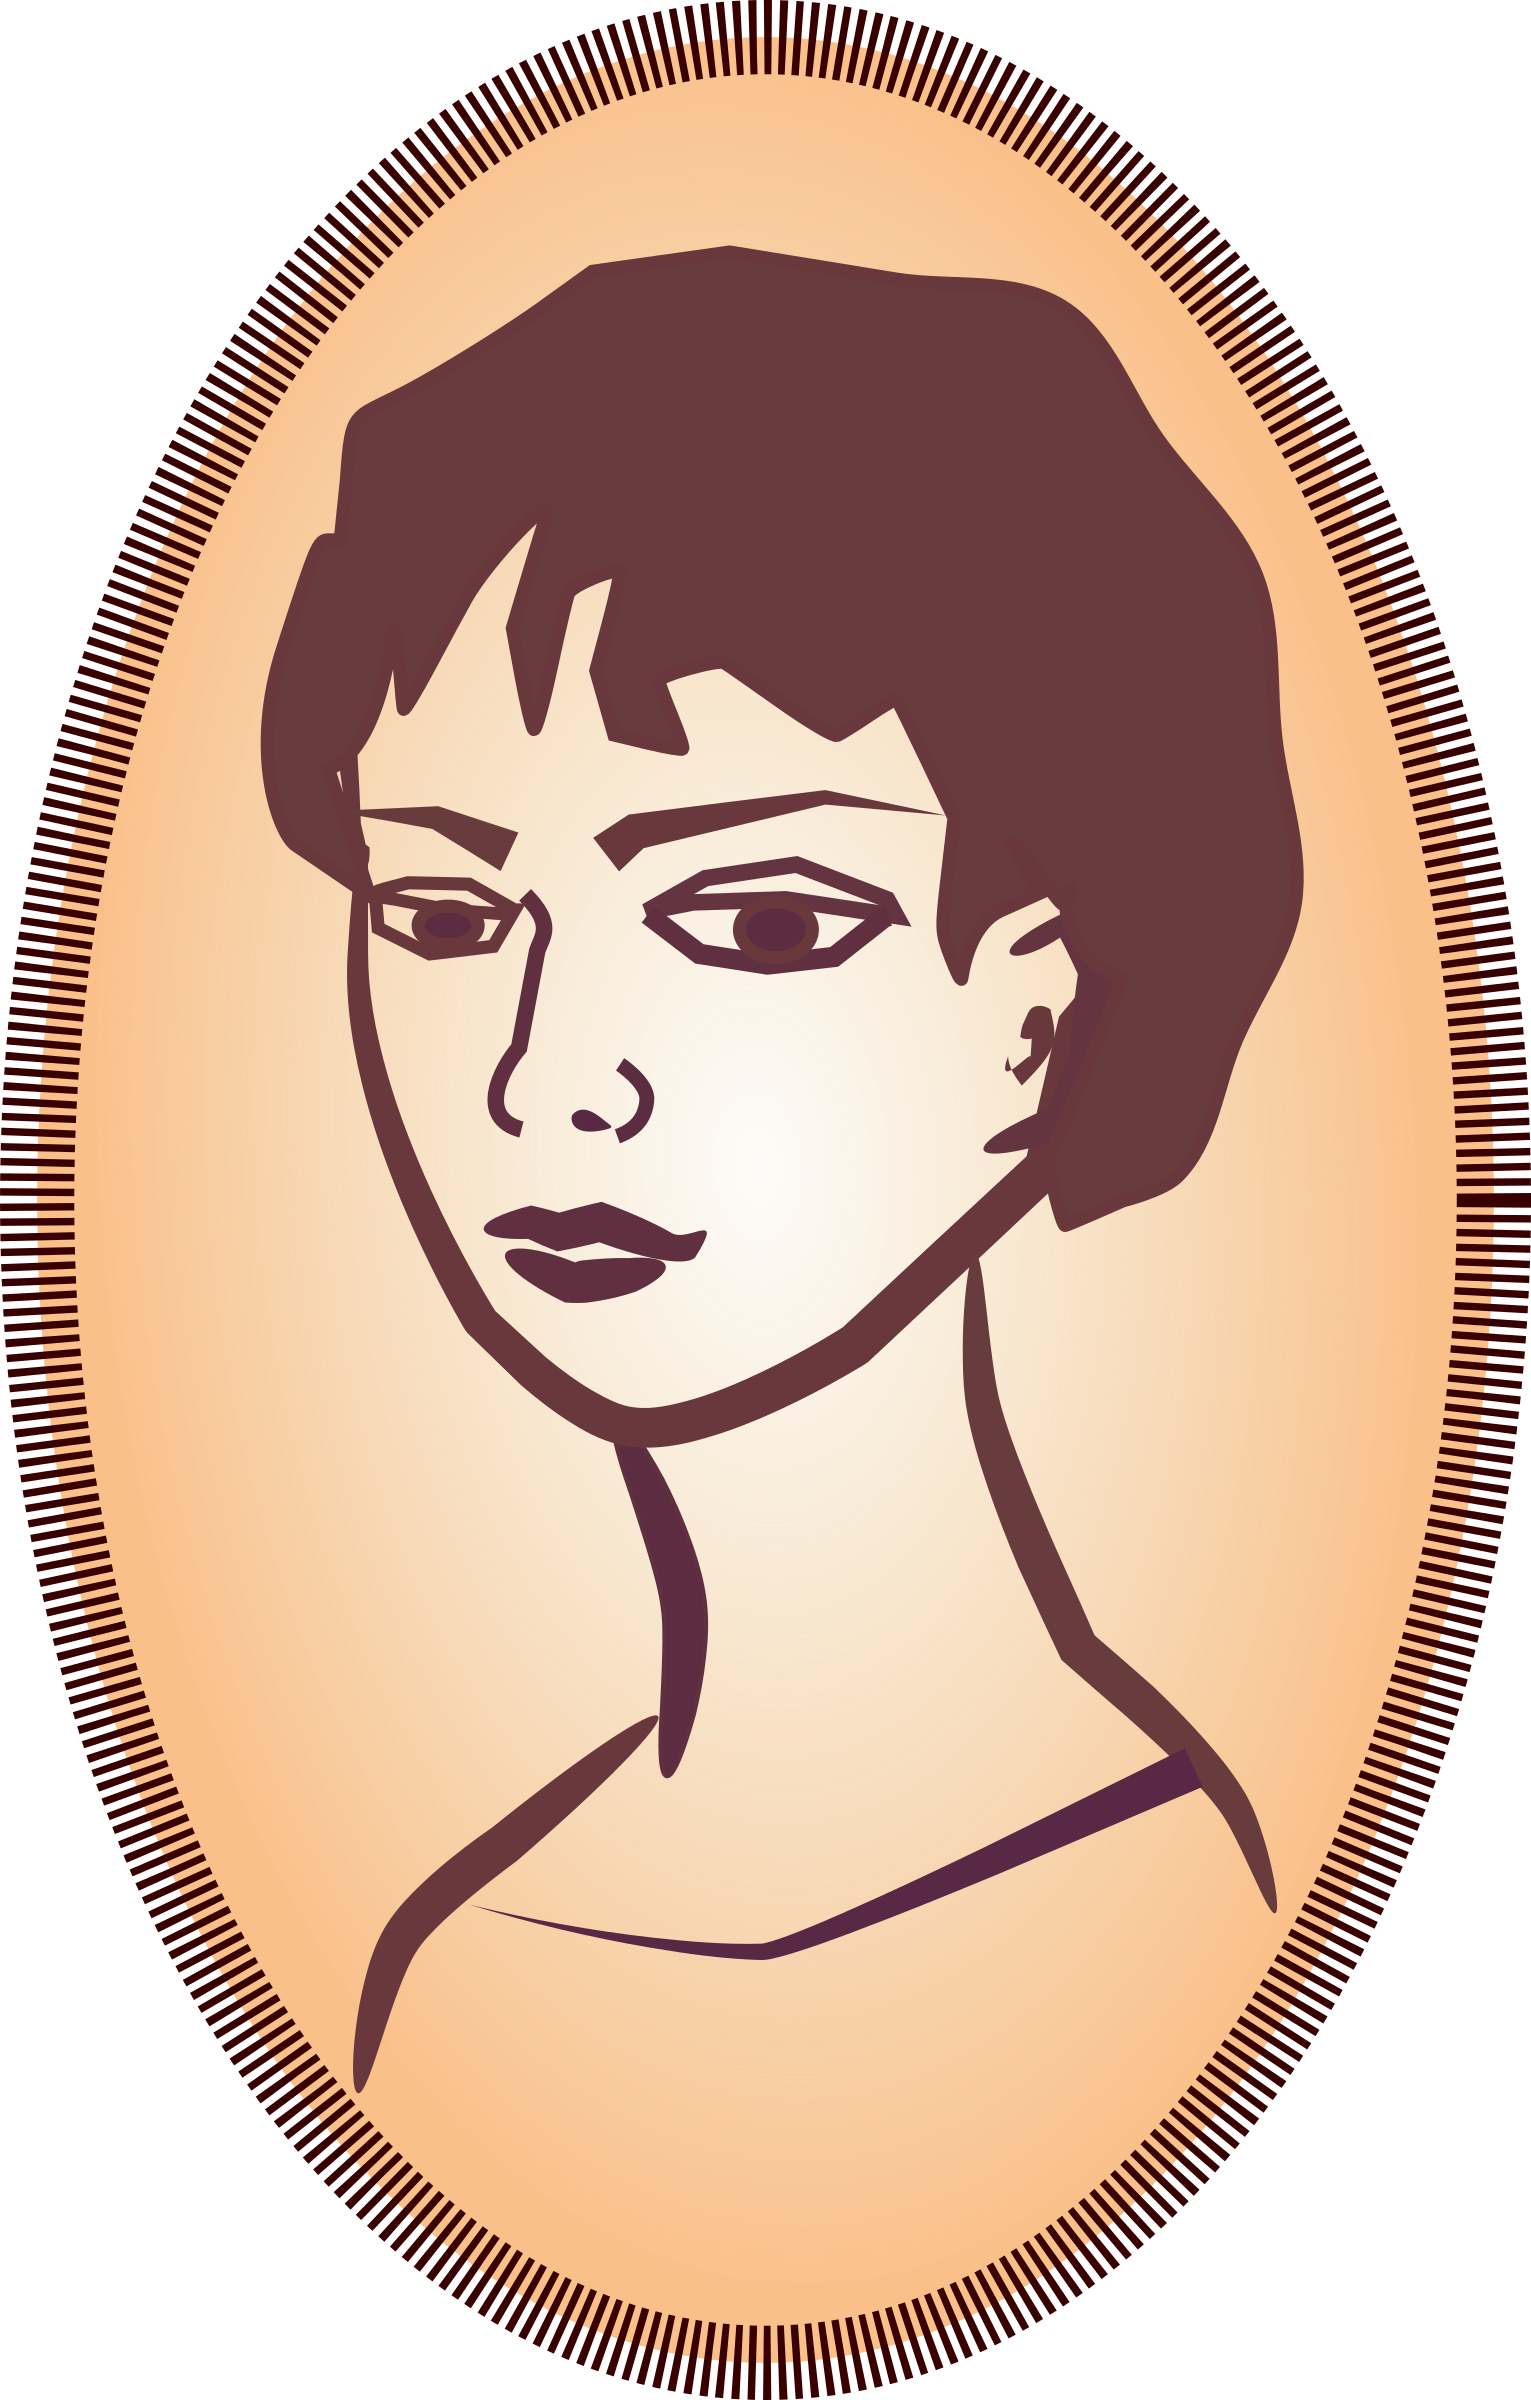 Woman's portrait by OlKu